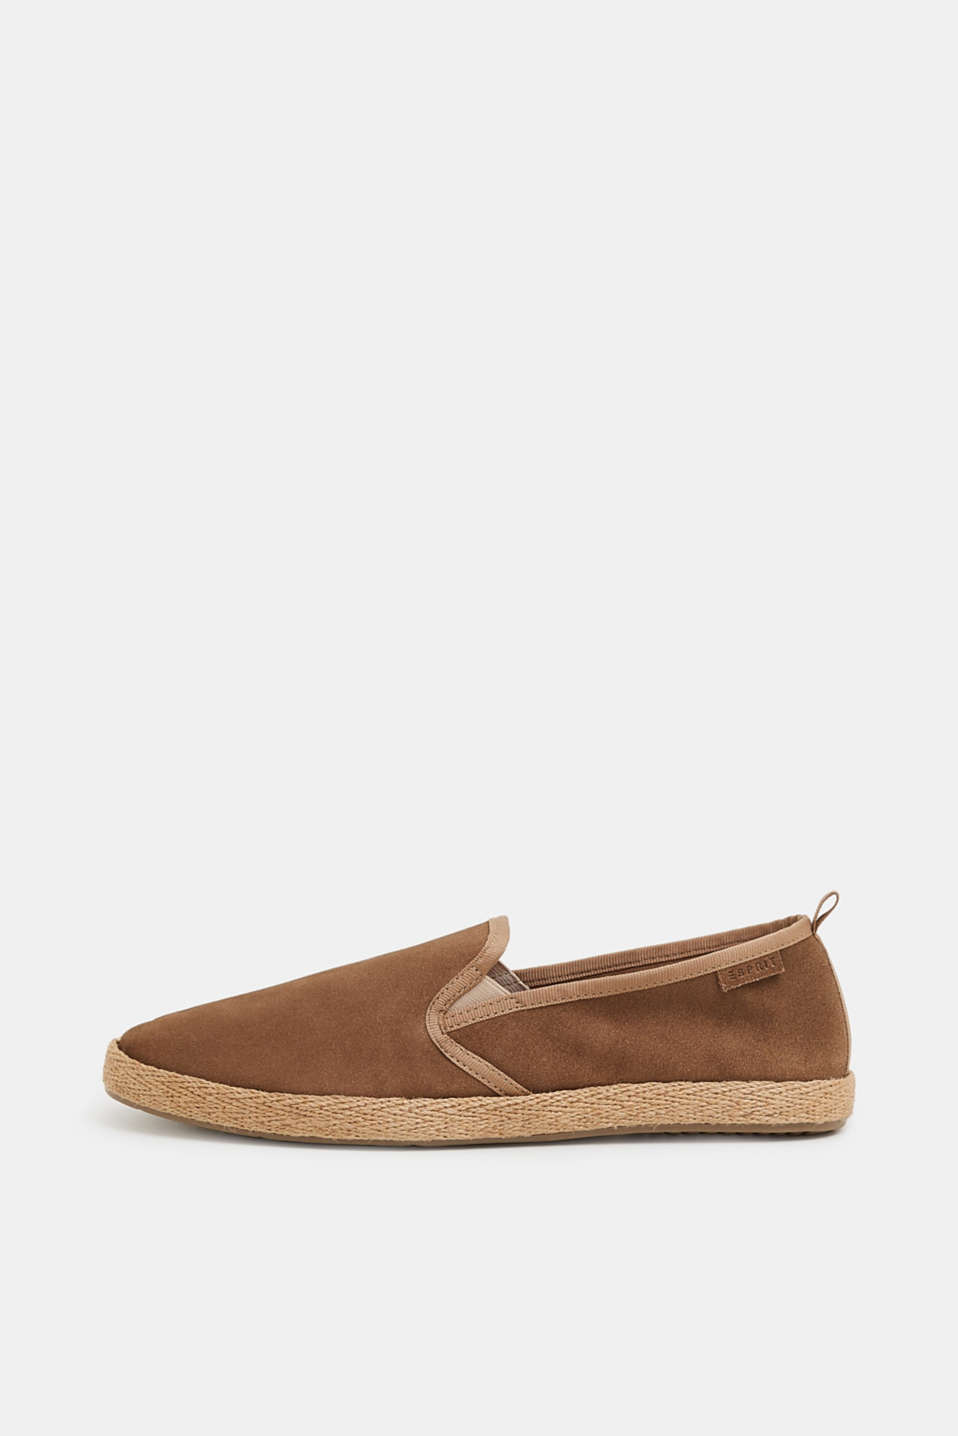 Esprit - Slippers with a bast sole, made of leather